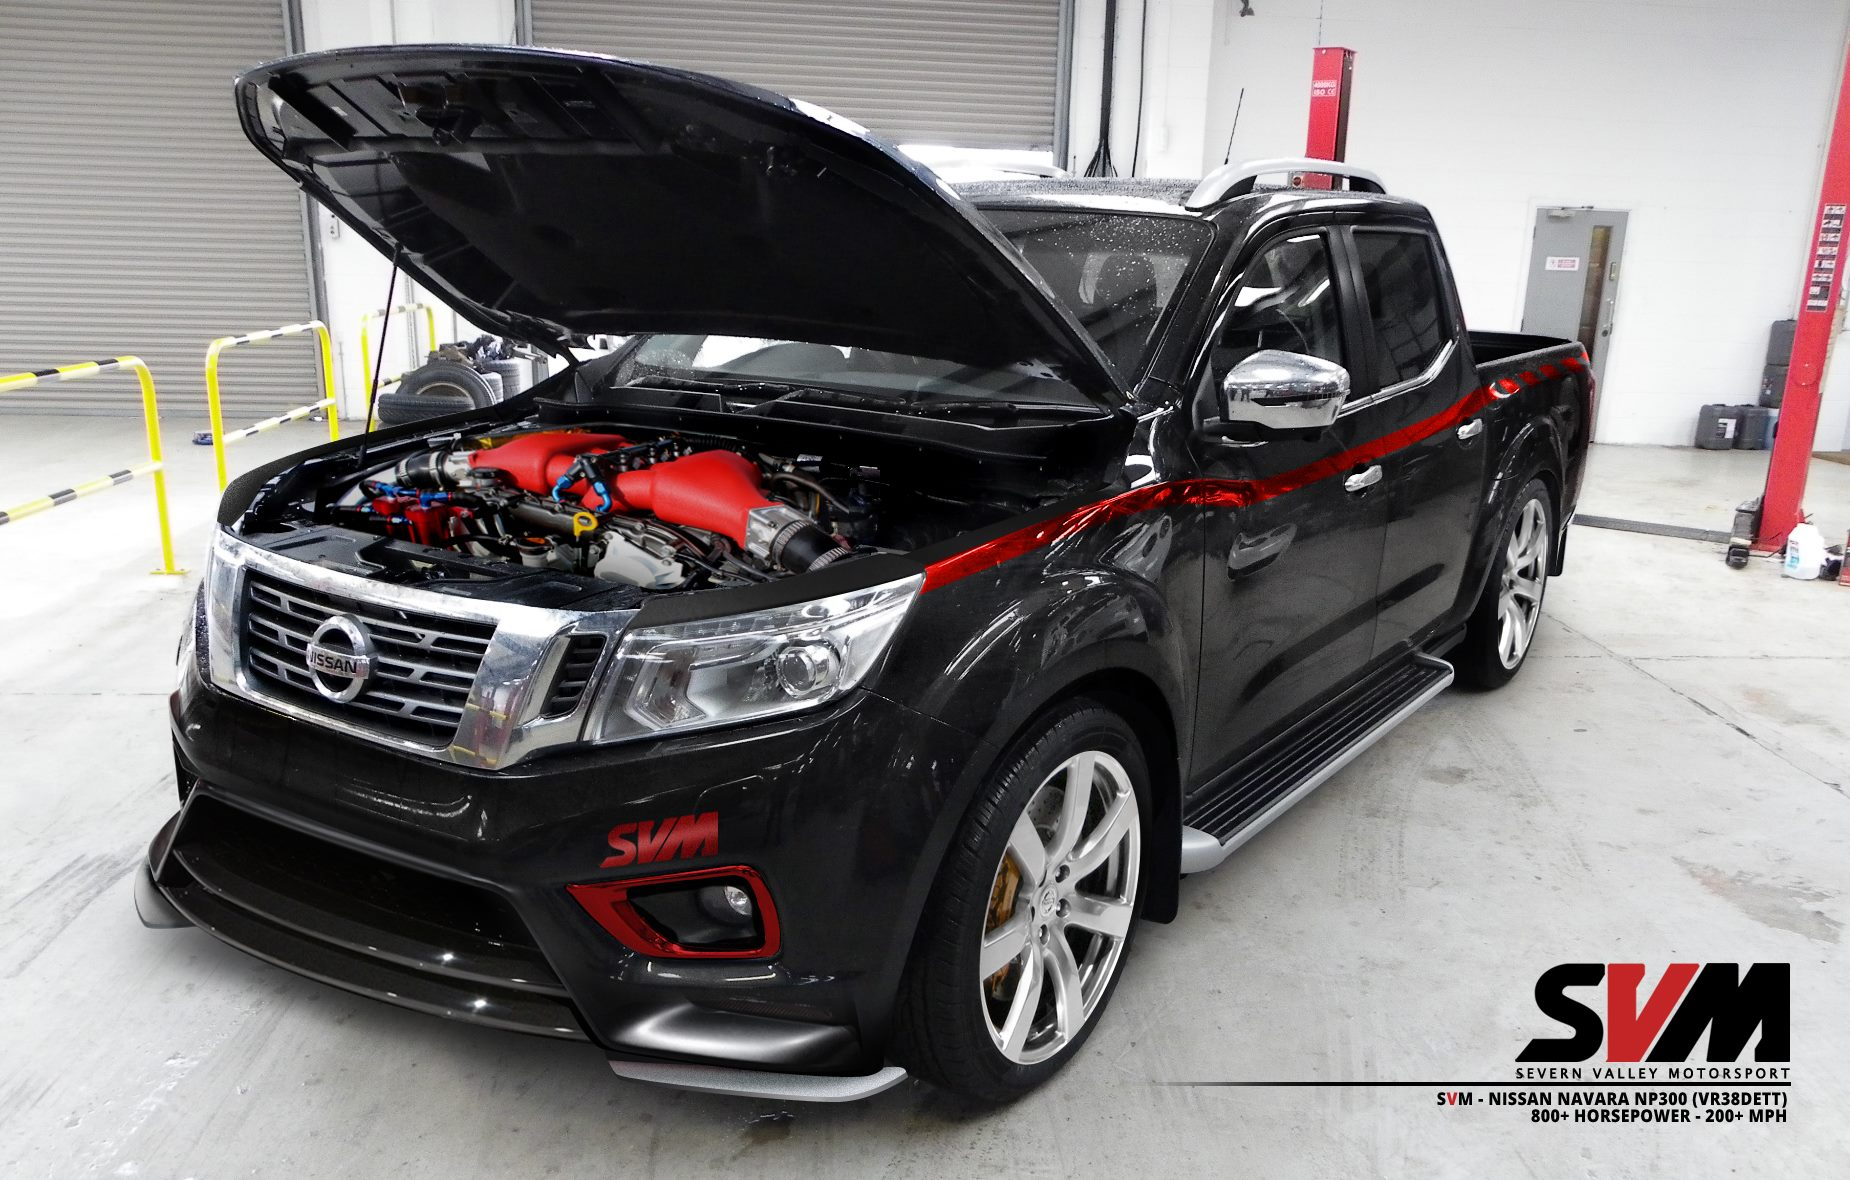 svm nissan navara np300 is powered by an 800 hp vr38dett. Black Bedroom Furniture Sets. Home Design Ideas